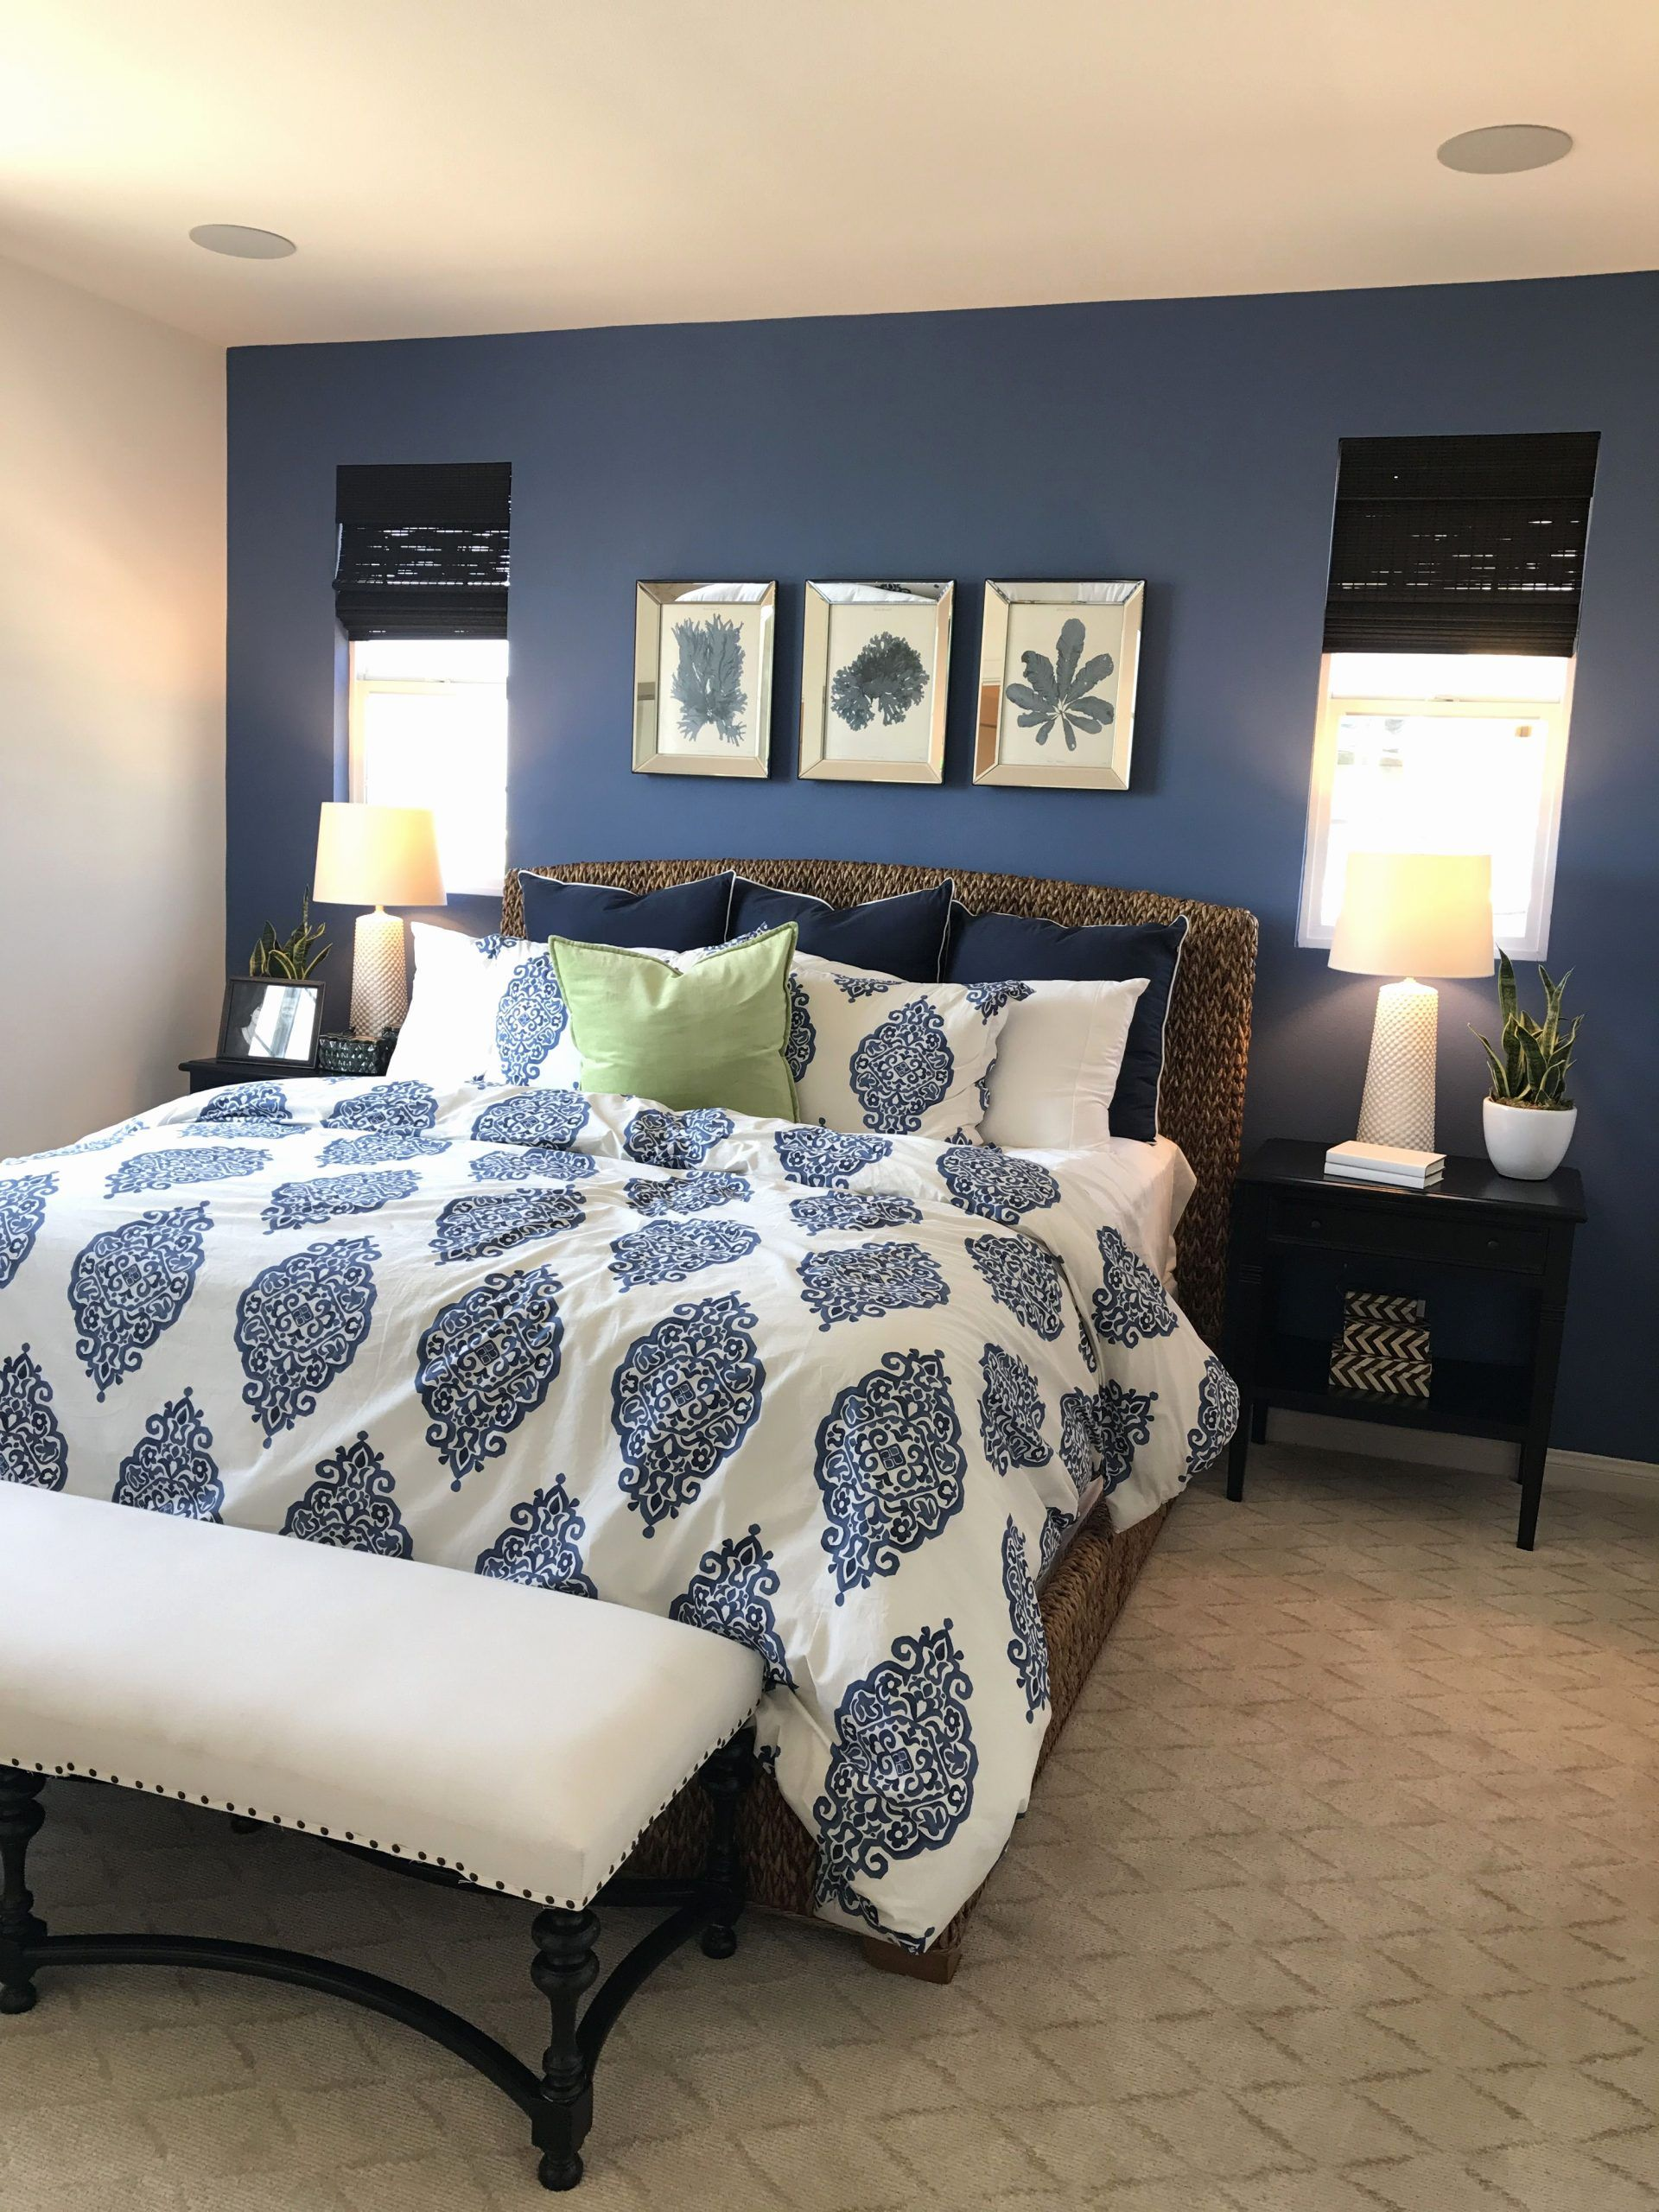 Dark Blue Bedroom Ideas in 2020 | Blue master bedroom ...